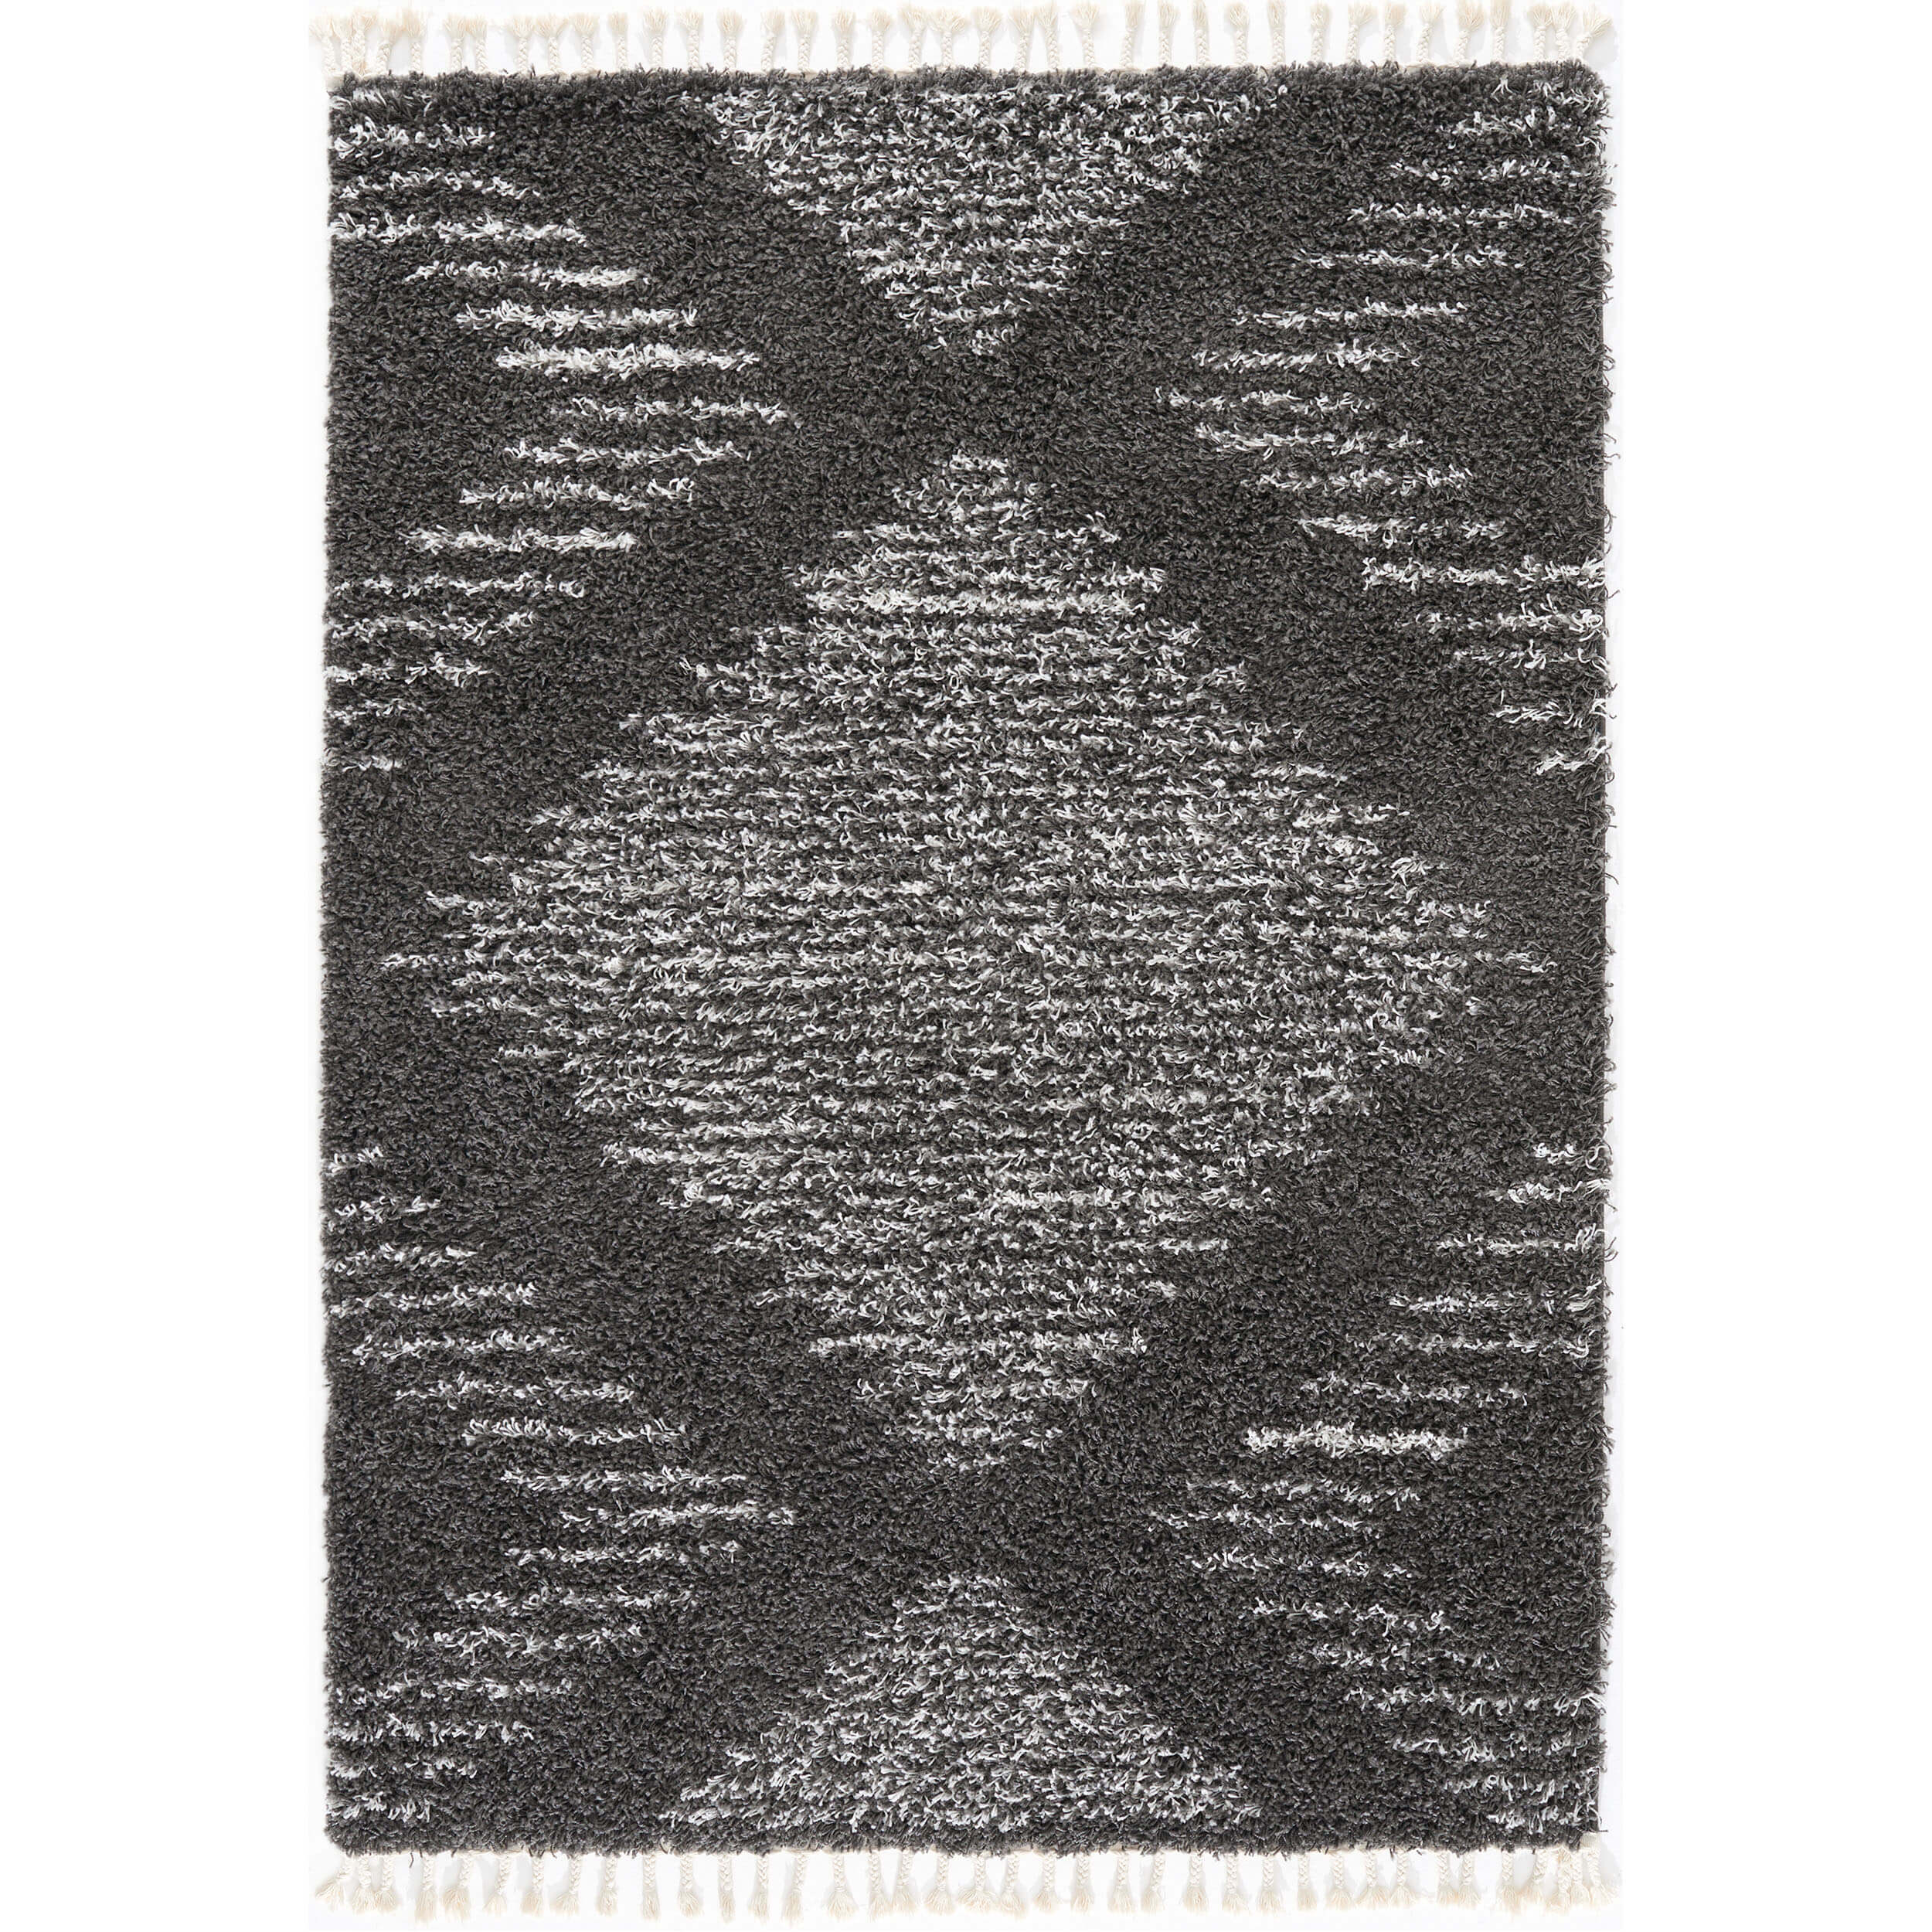 Grey Moroccan Shaggy Rug for Living Room